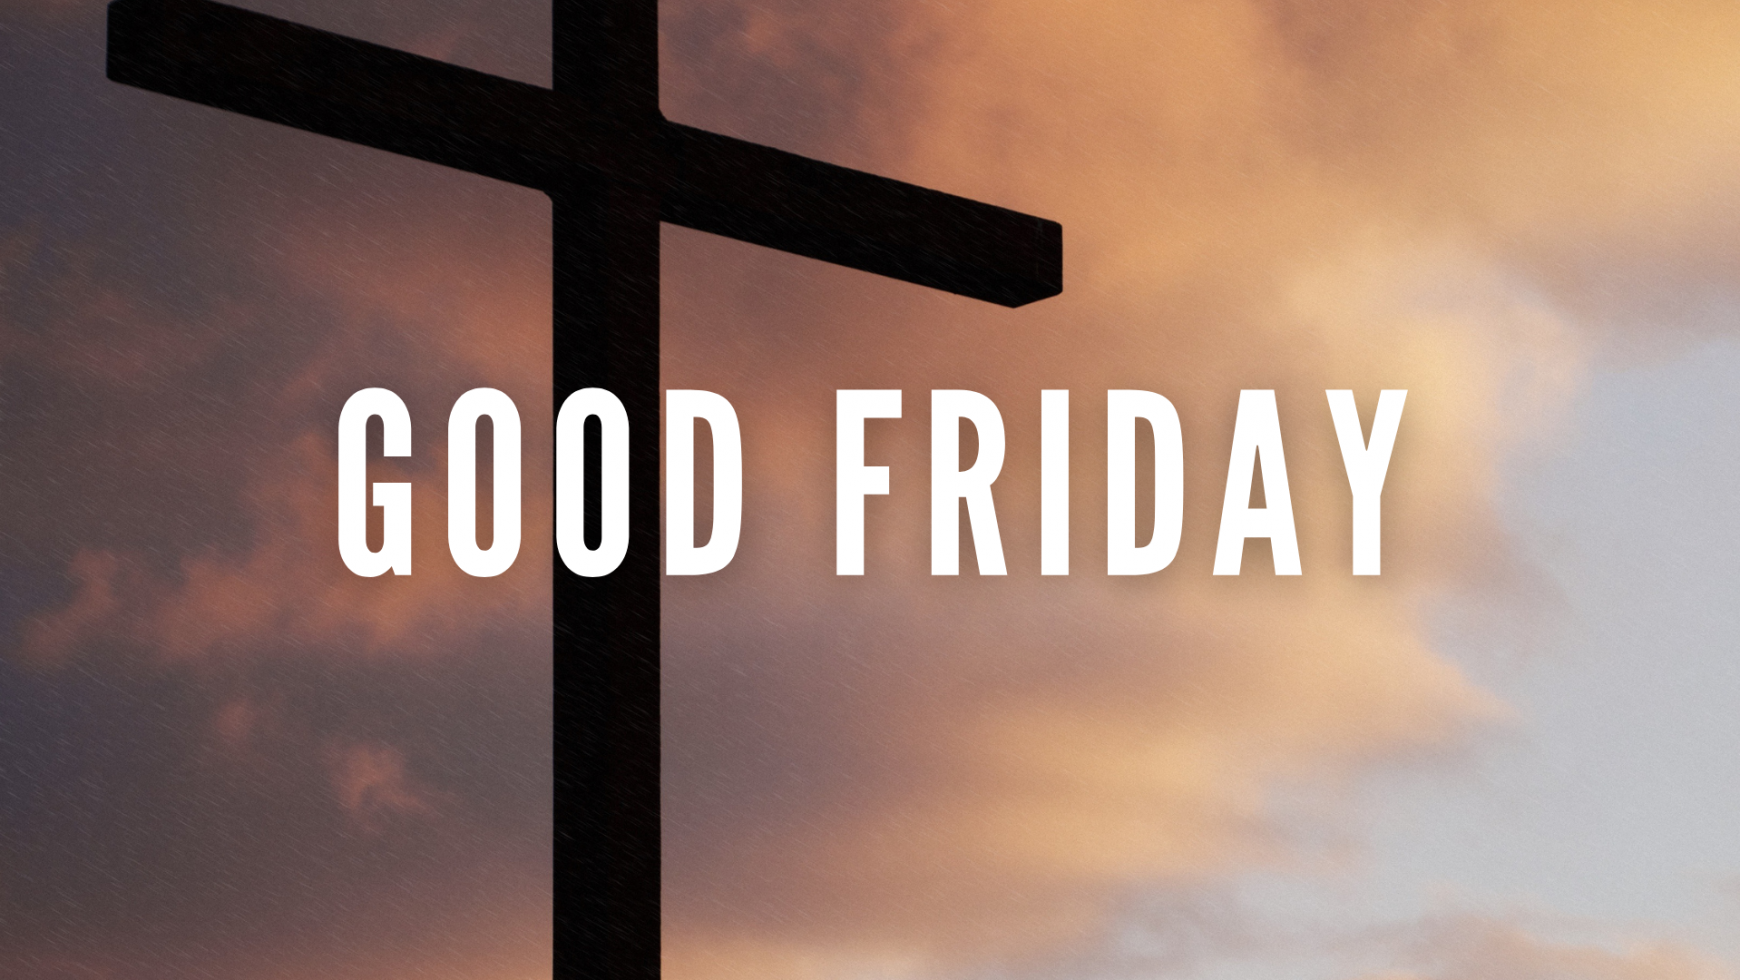 What is so good about Good Friday?